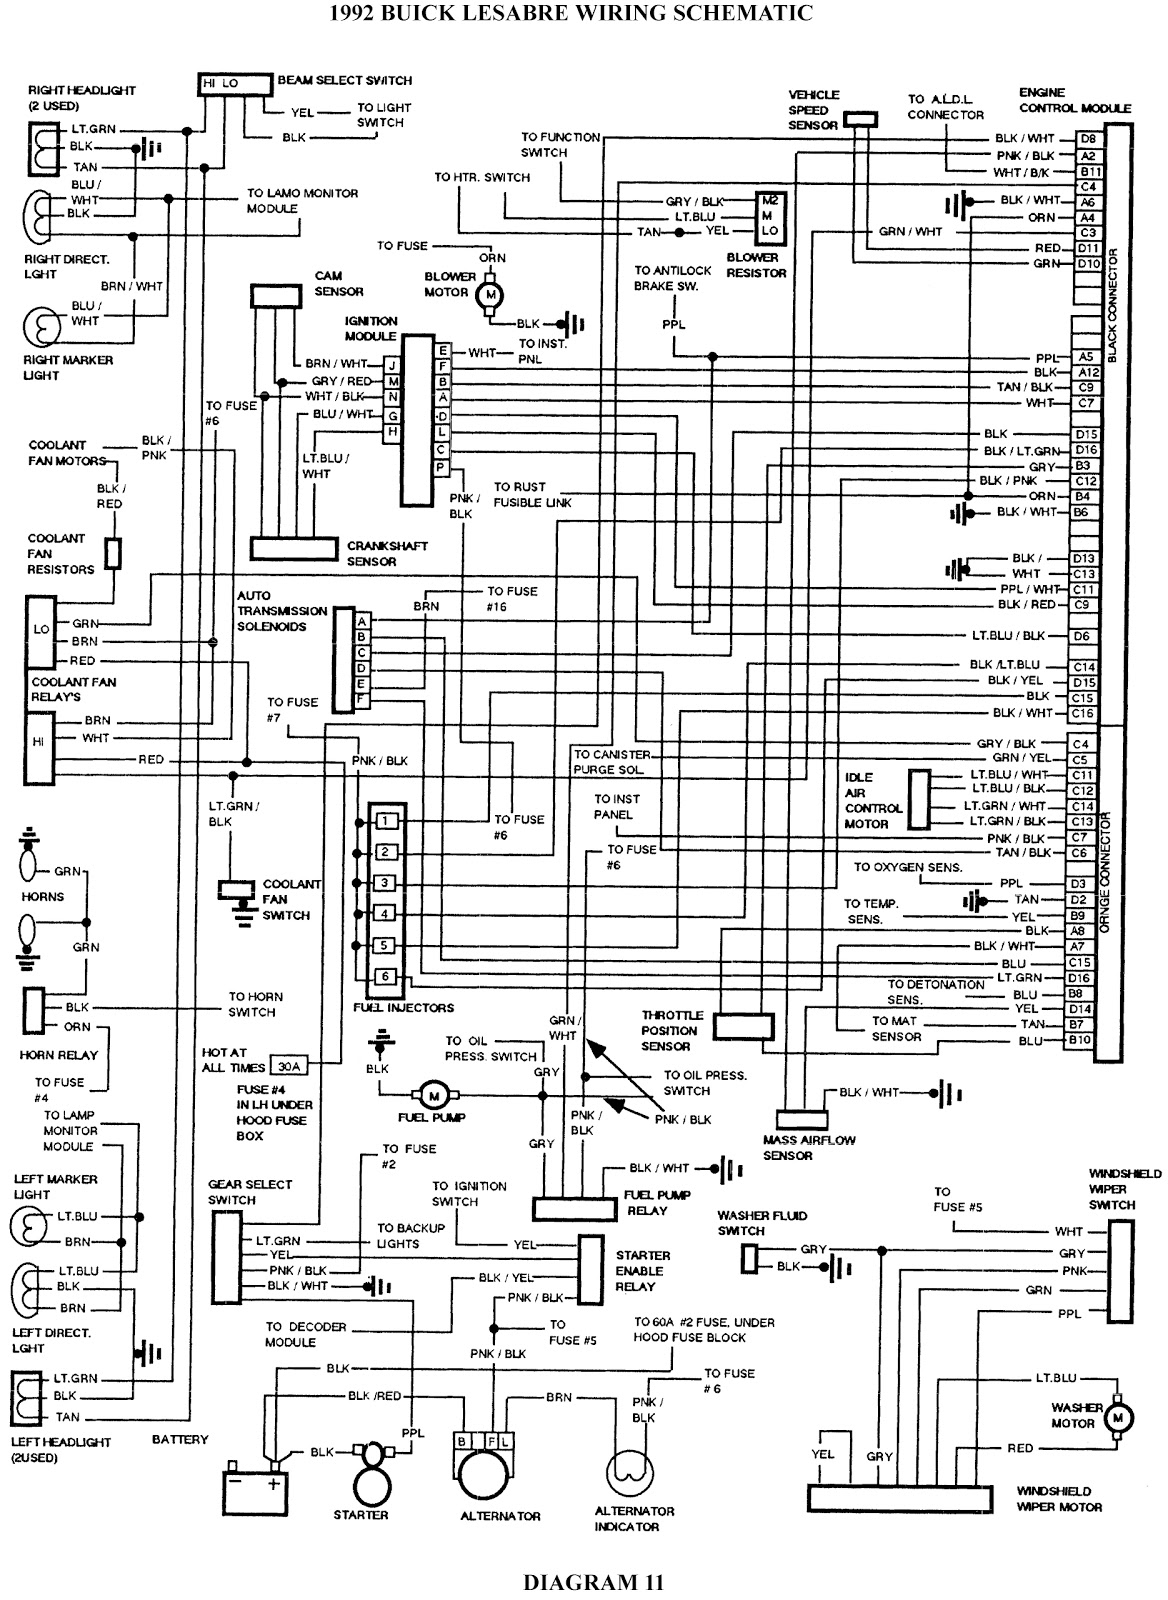 headlight circuit diagram of 1998 buick regal gs all about wiring 1998 buick regal wiring diagram [ 1168 x 1600 Pixel ]